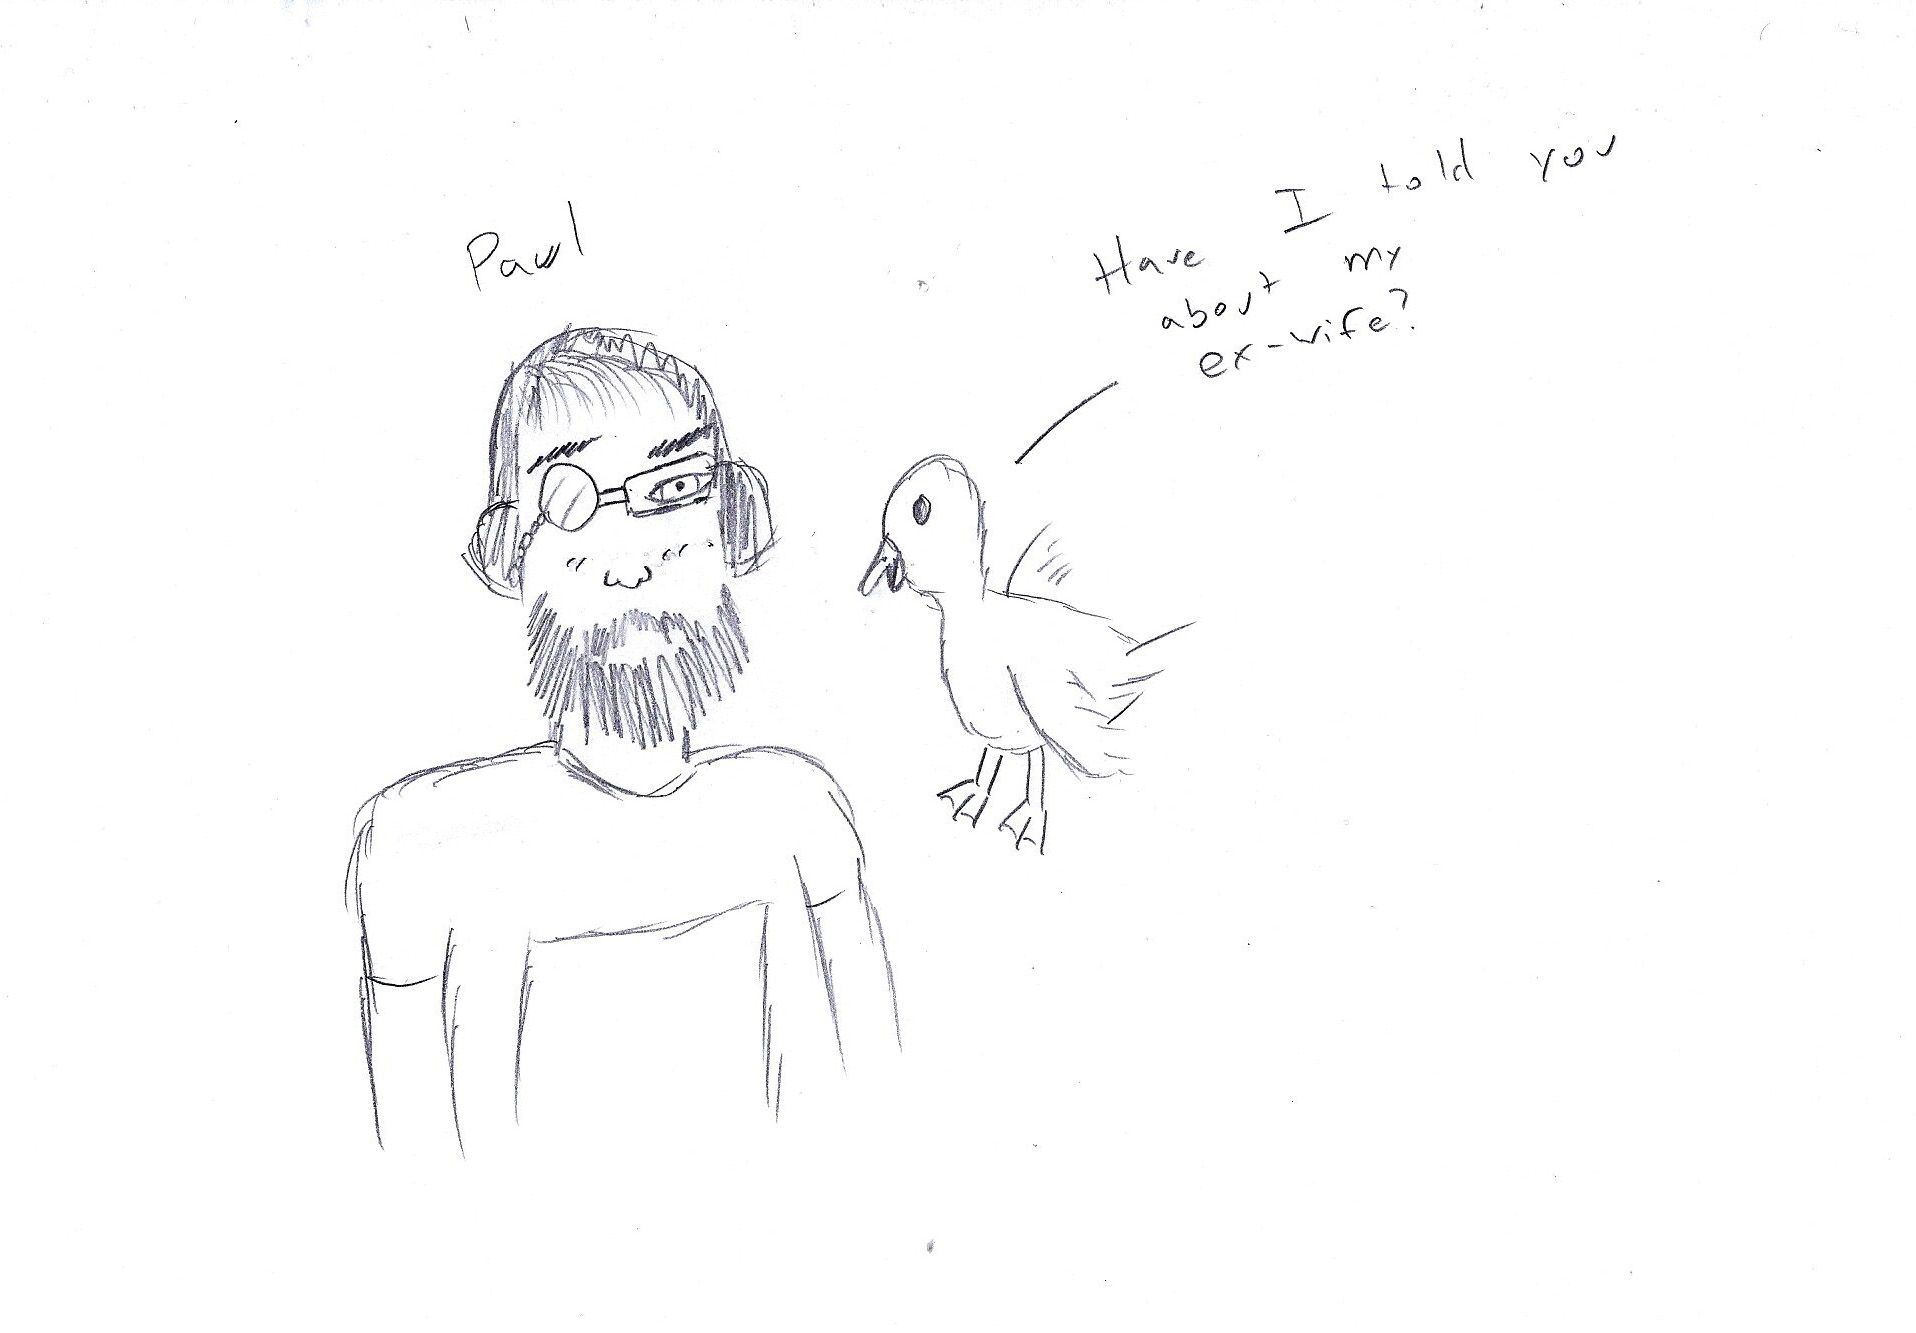 And of course, the very first picture drawn hastily which would lead to the comic.